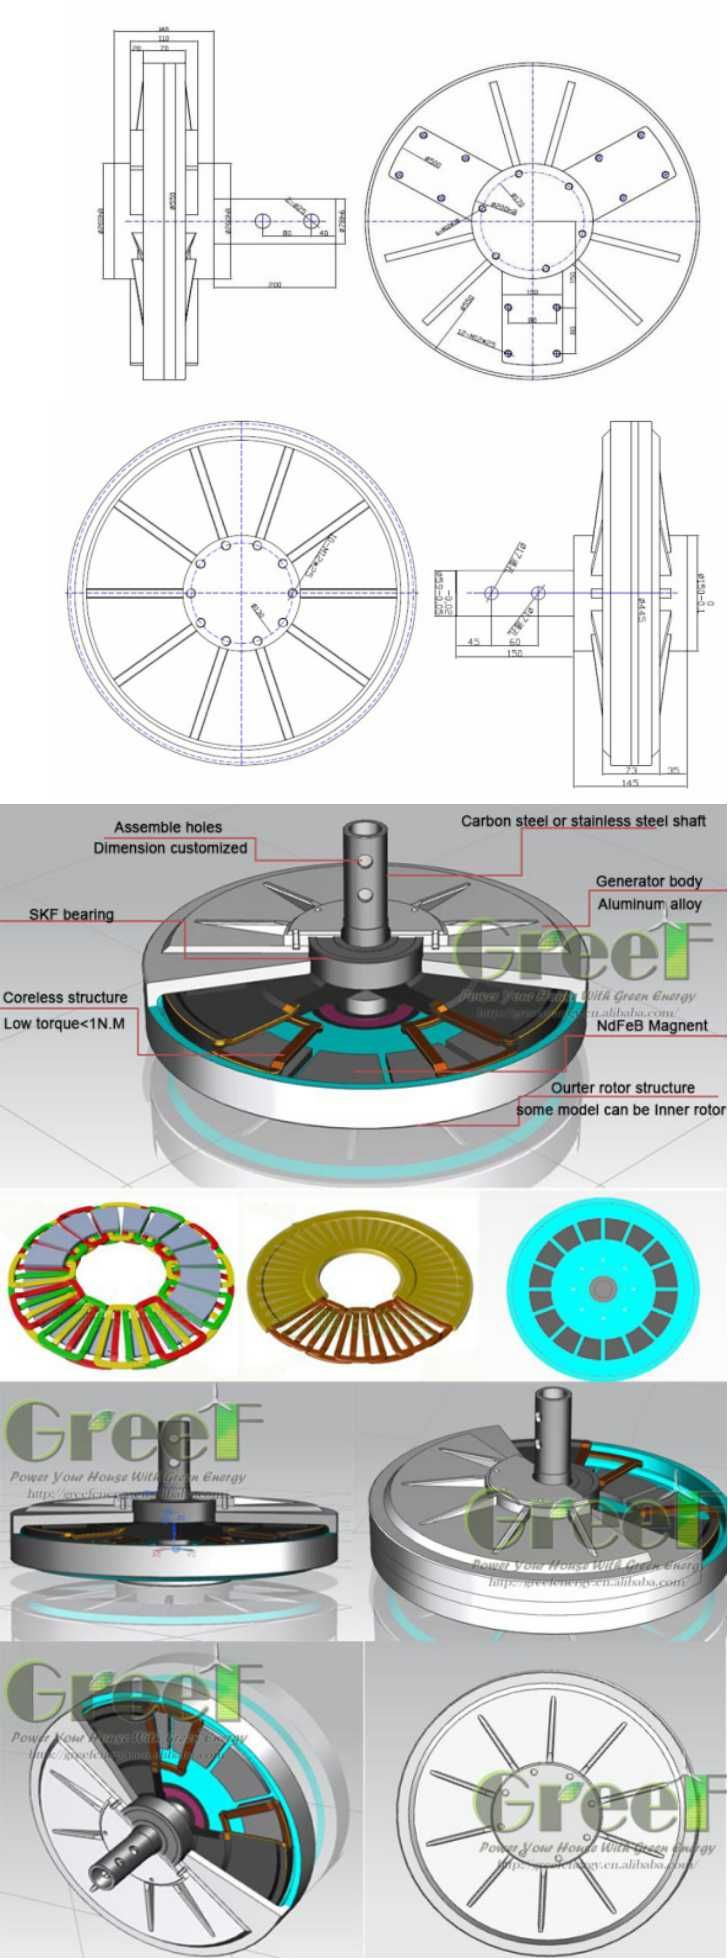 10kw 150rpm Vertical Axis Wind Generator With Low Start Torque Alternating Current Diagram Besides Bedini Motor China Turbine Power Made In Chinacom Mobile